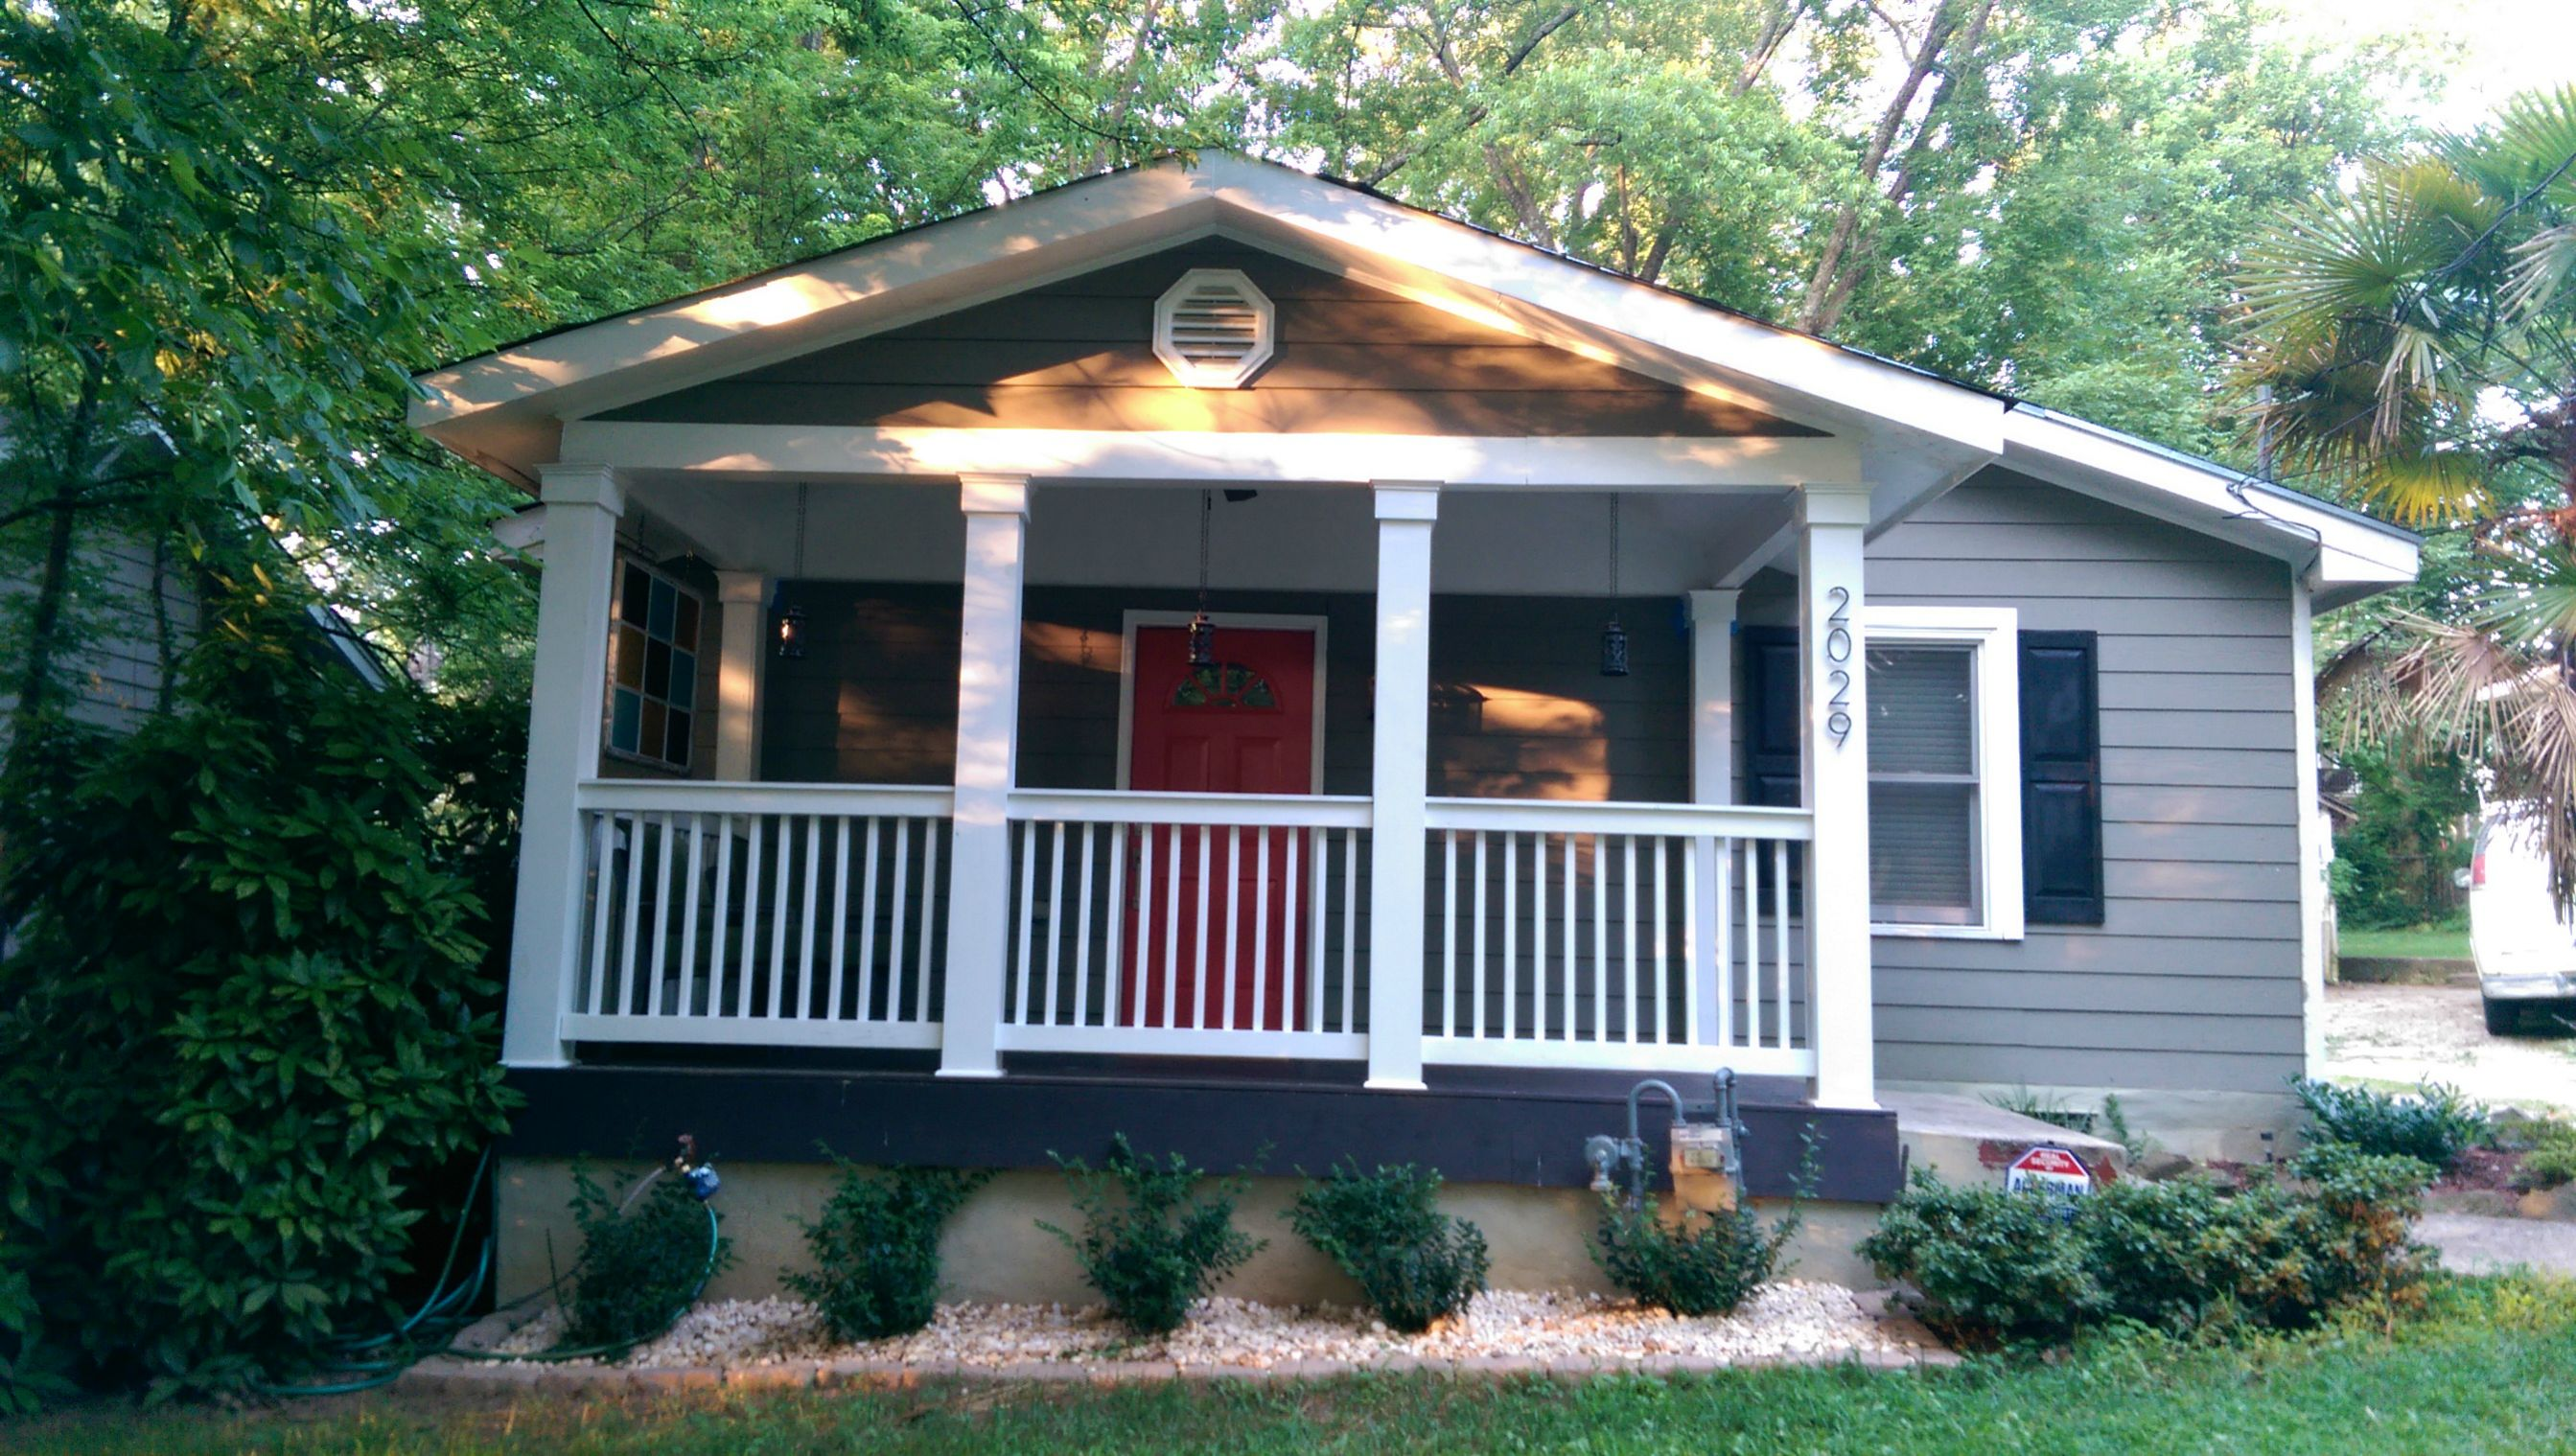 Affordable front porch makeover mobile home living for Single wide mobile homes with front porches